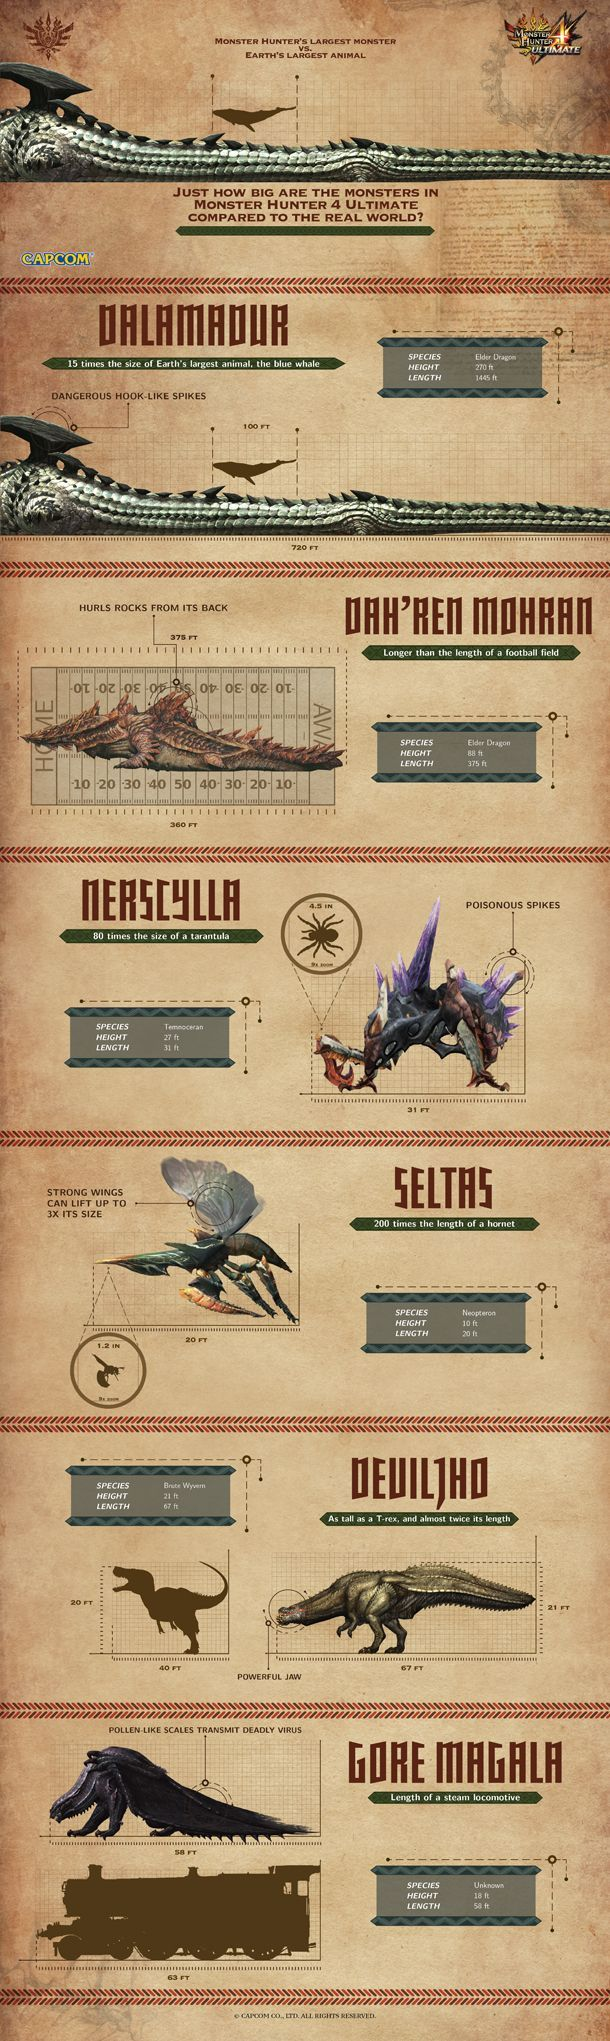 Get A Sense Of Monster Hunter Monster Scale With Collection Of Infographics - Monster Hunter 4 Ultimate - 3DS - www.GameInformer.com: